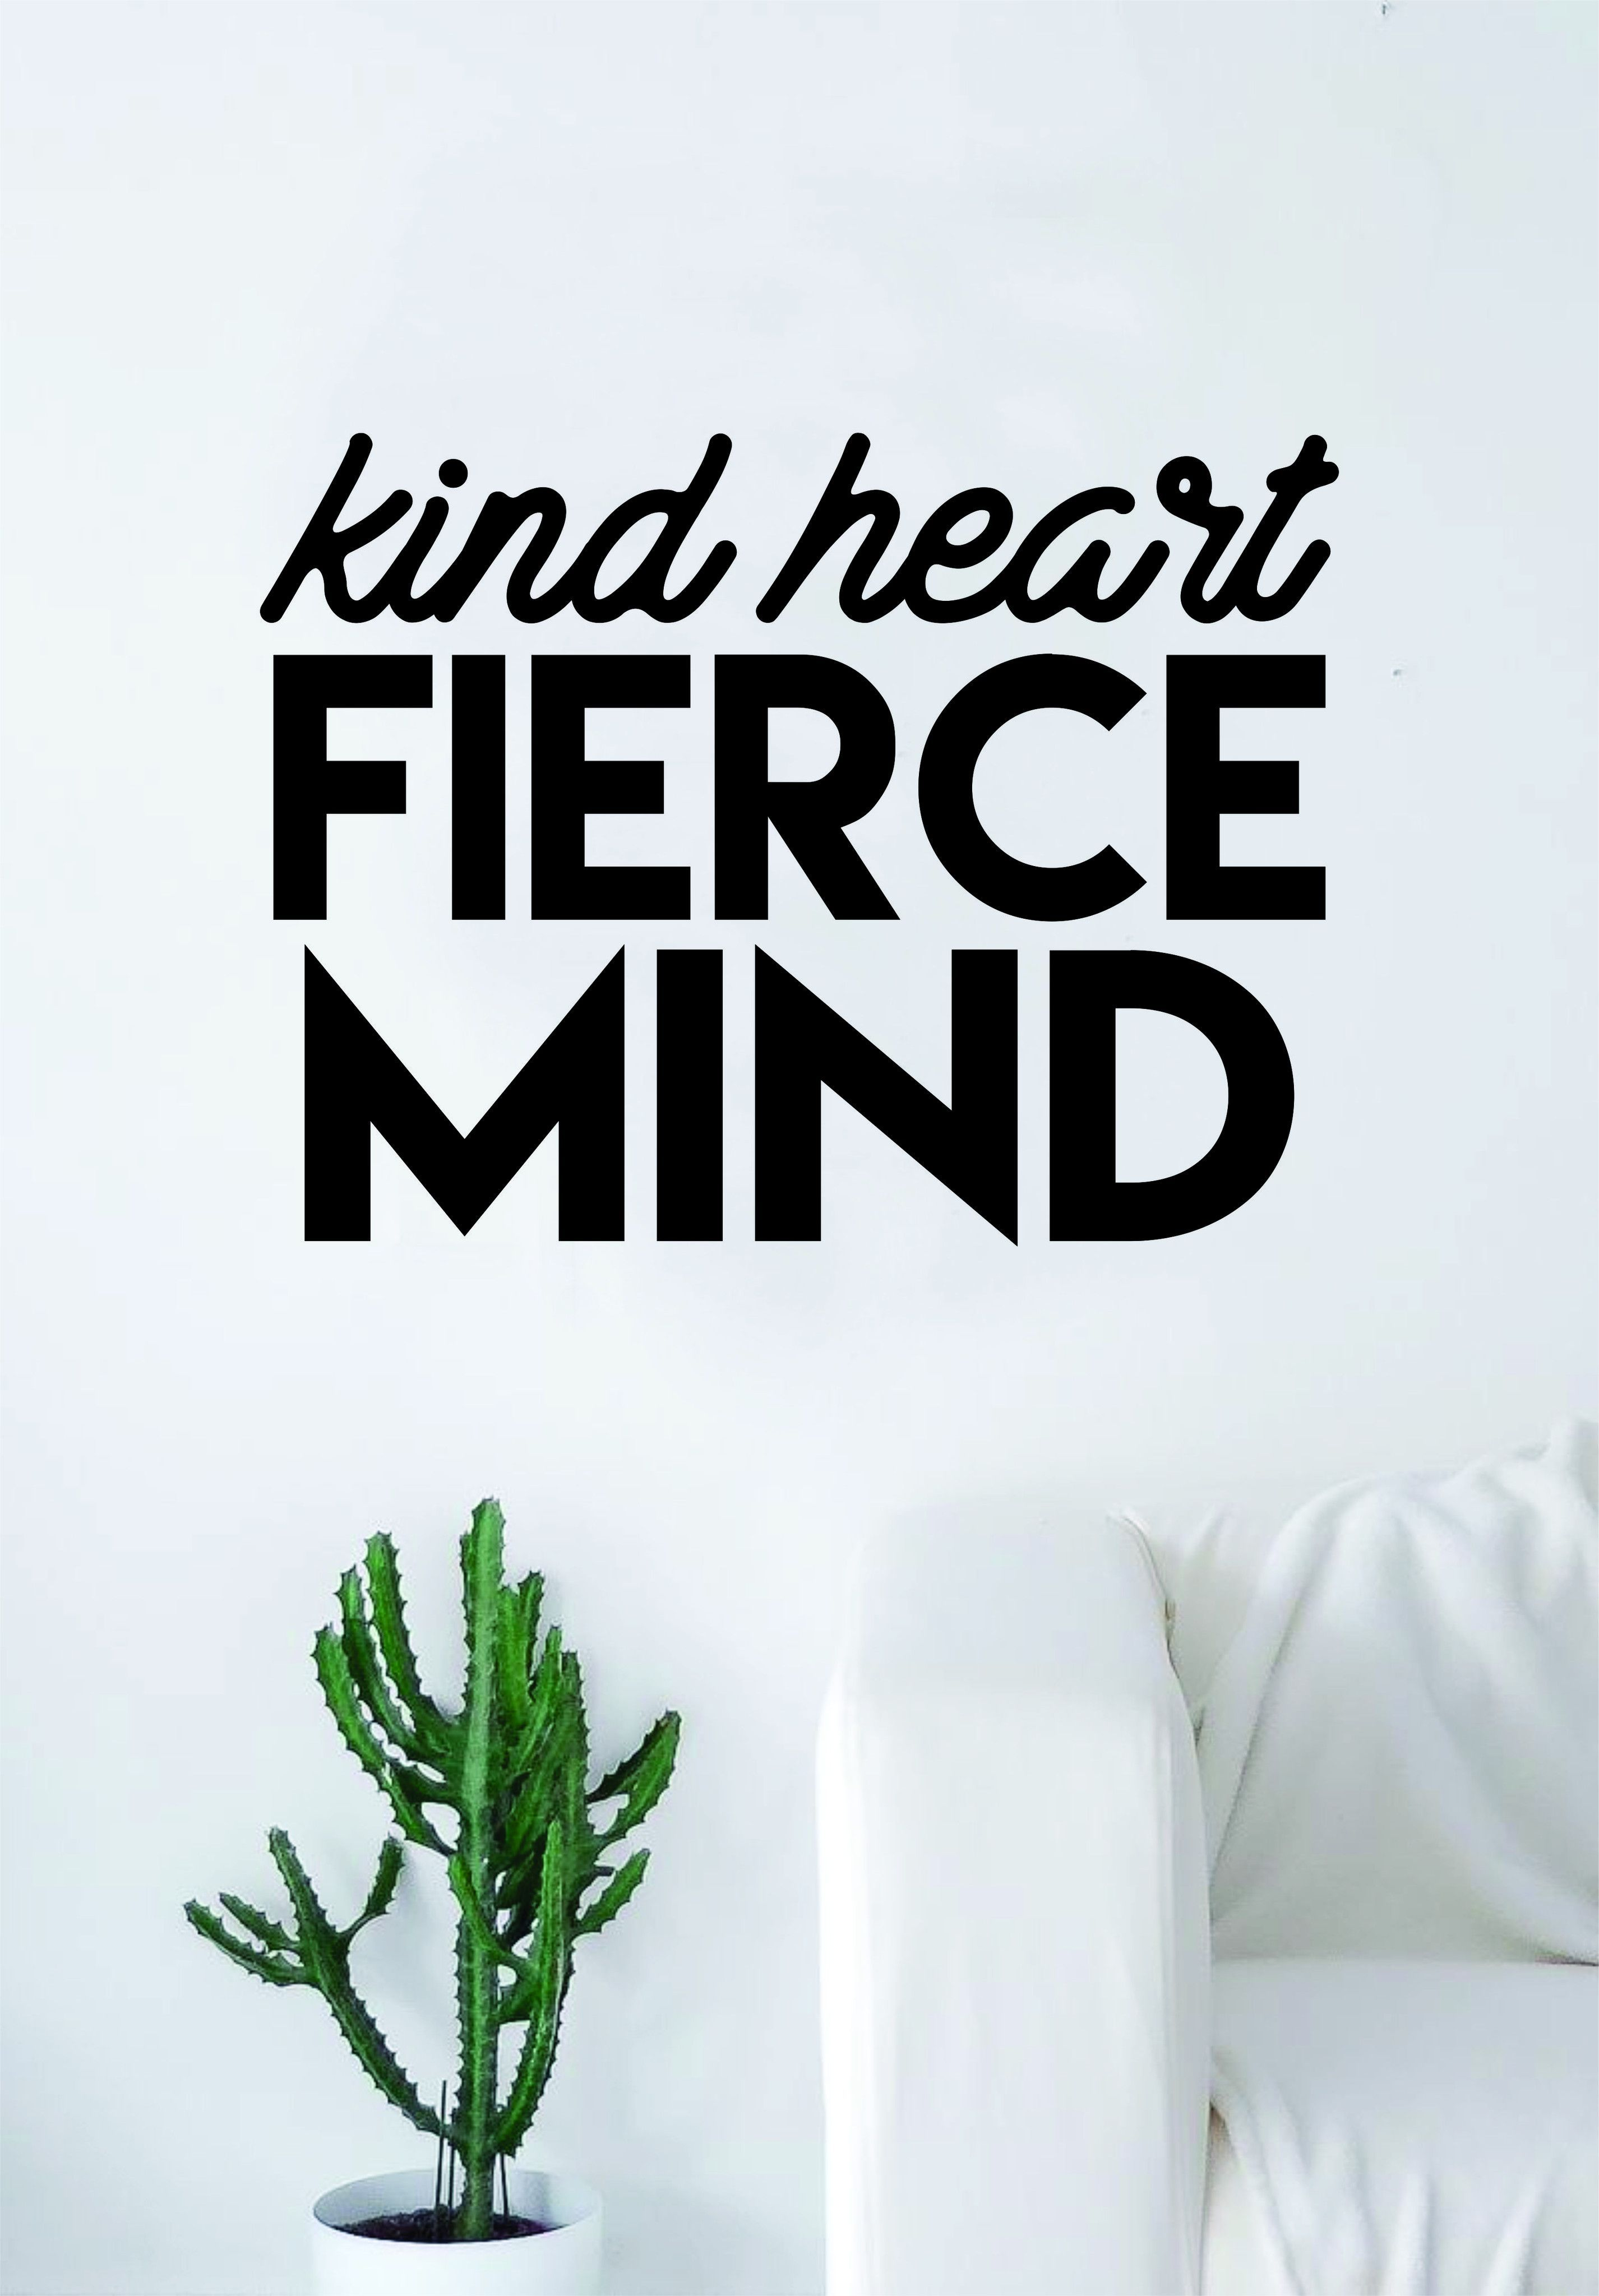 Kind Heart Fierce Mind Quote Wall Decal Sticker Bedroom